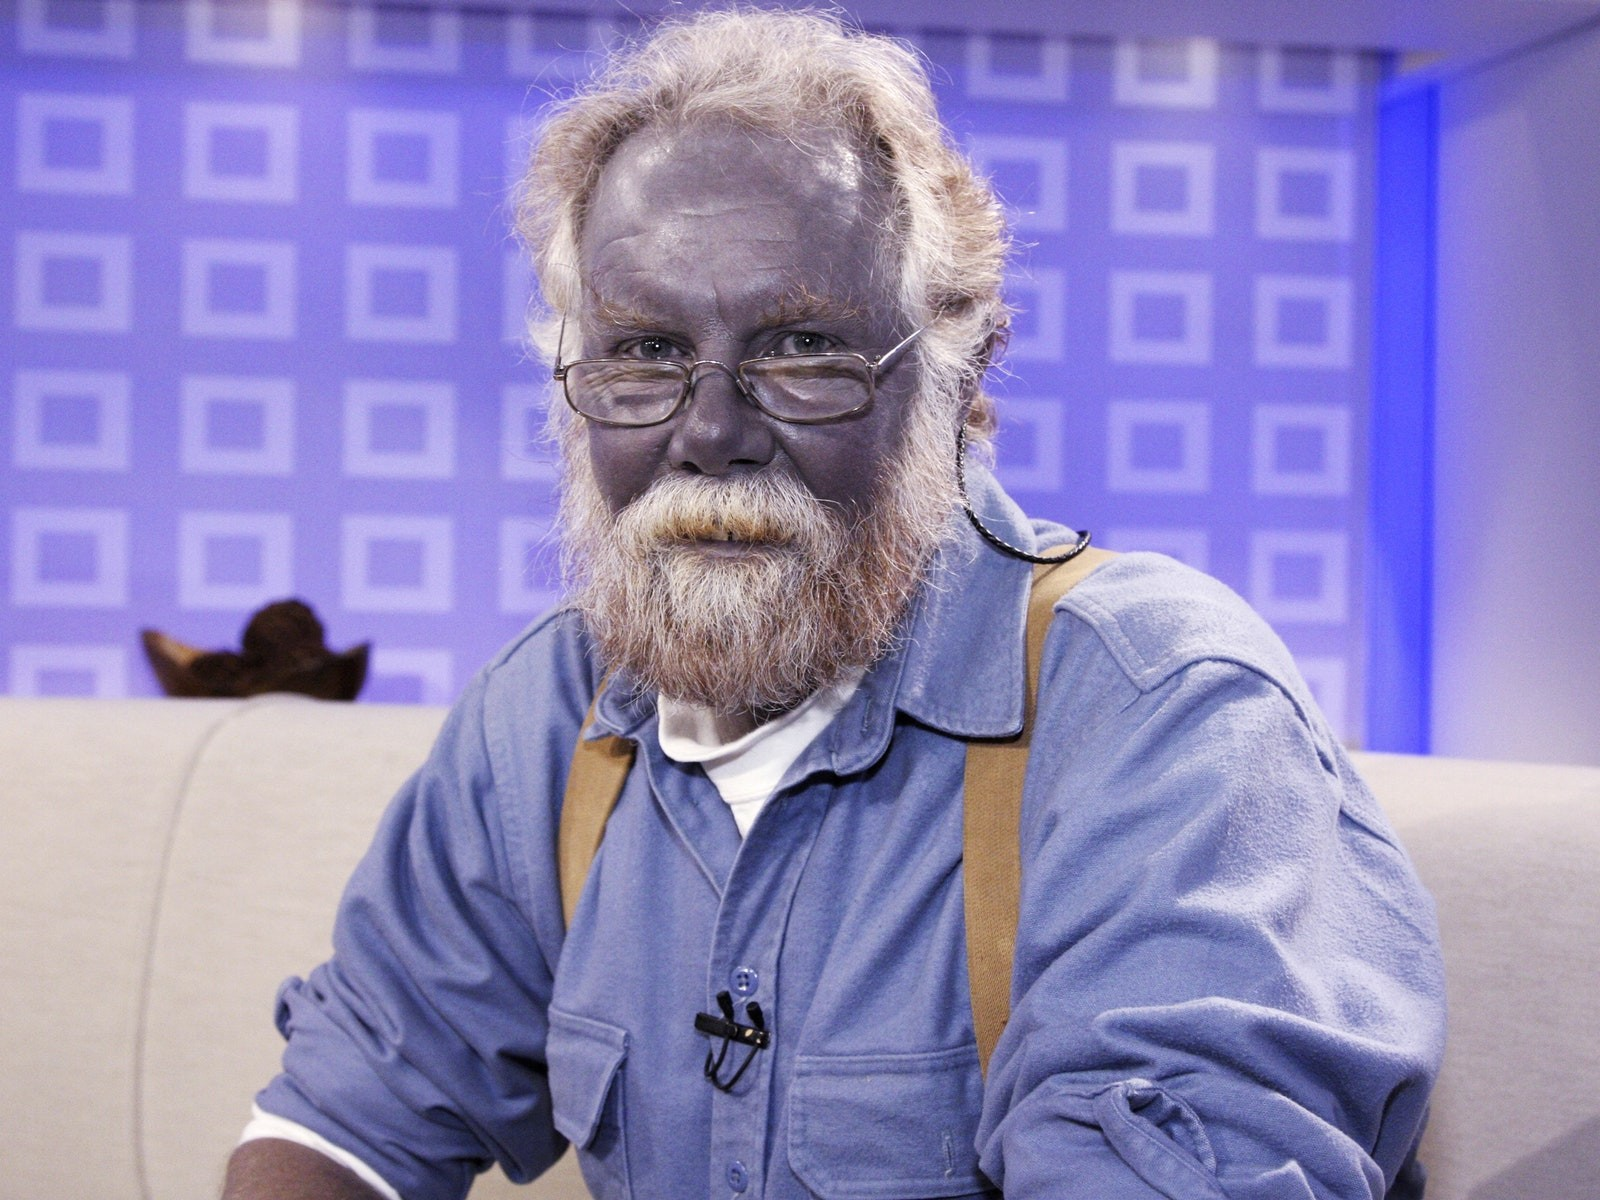 Is It Possible That People Have Blue Skin?